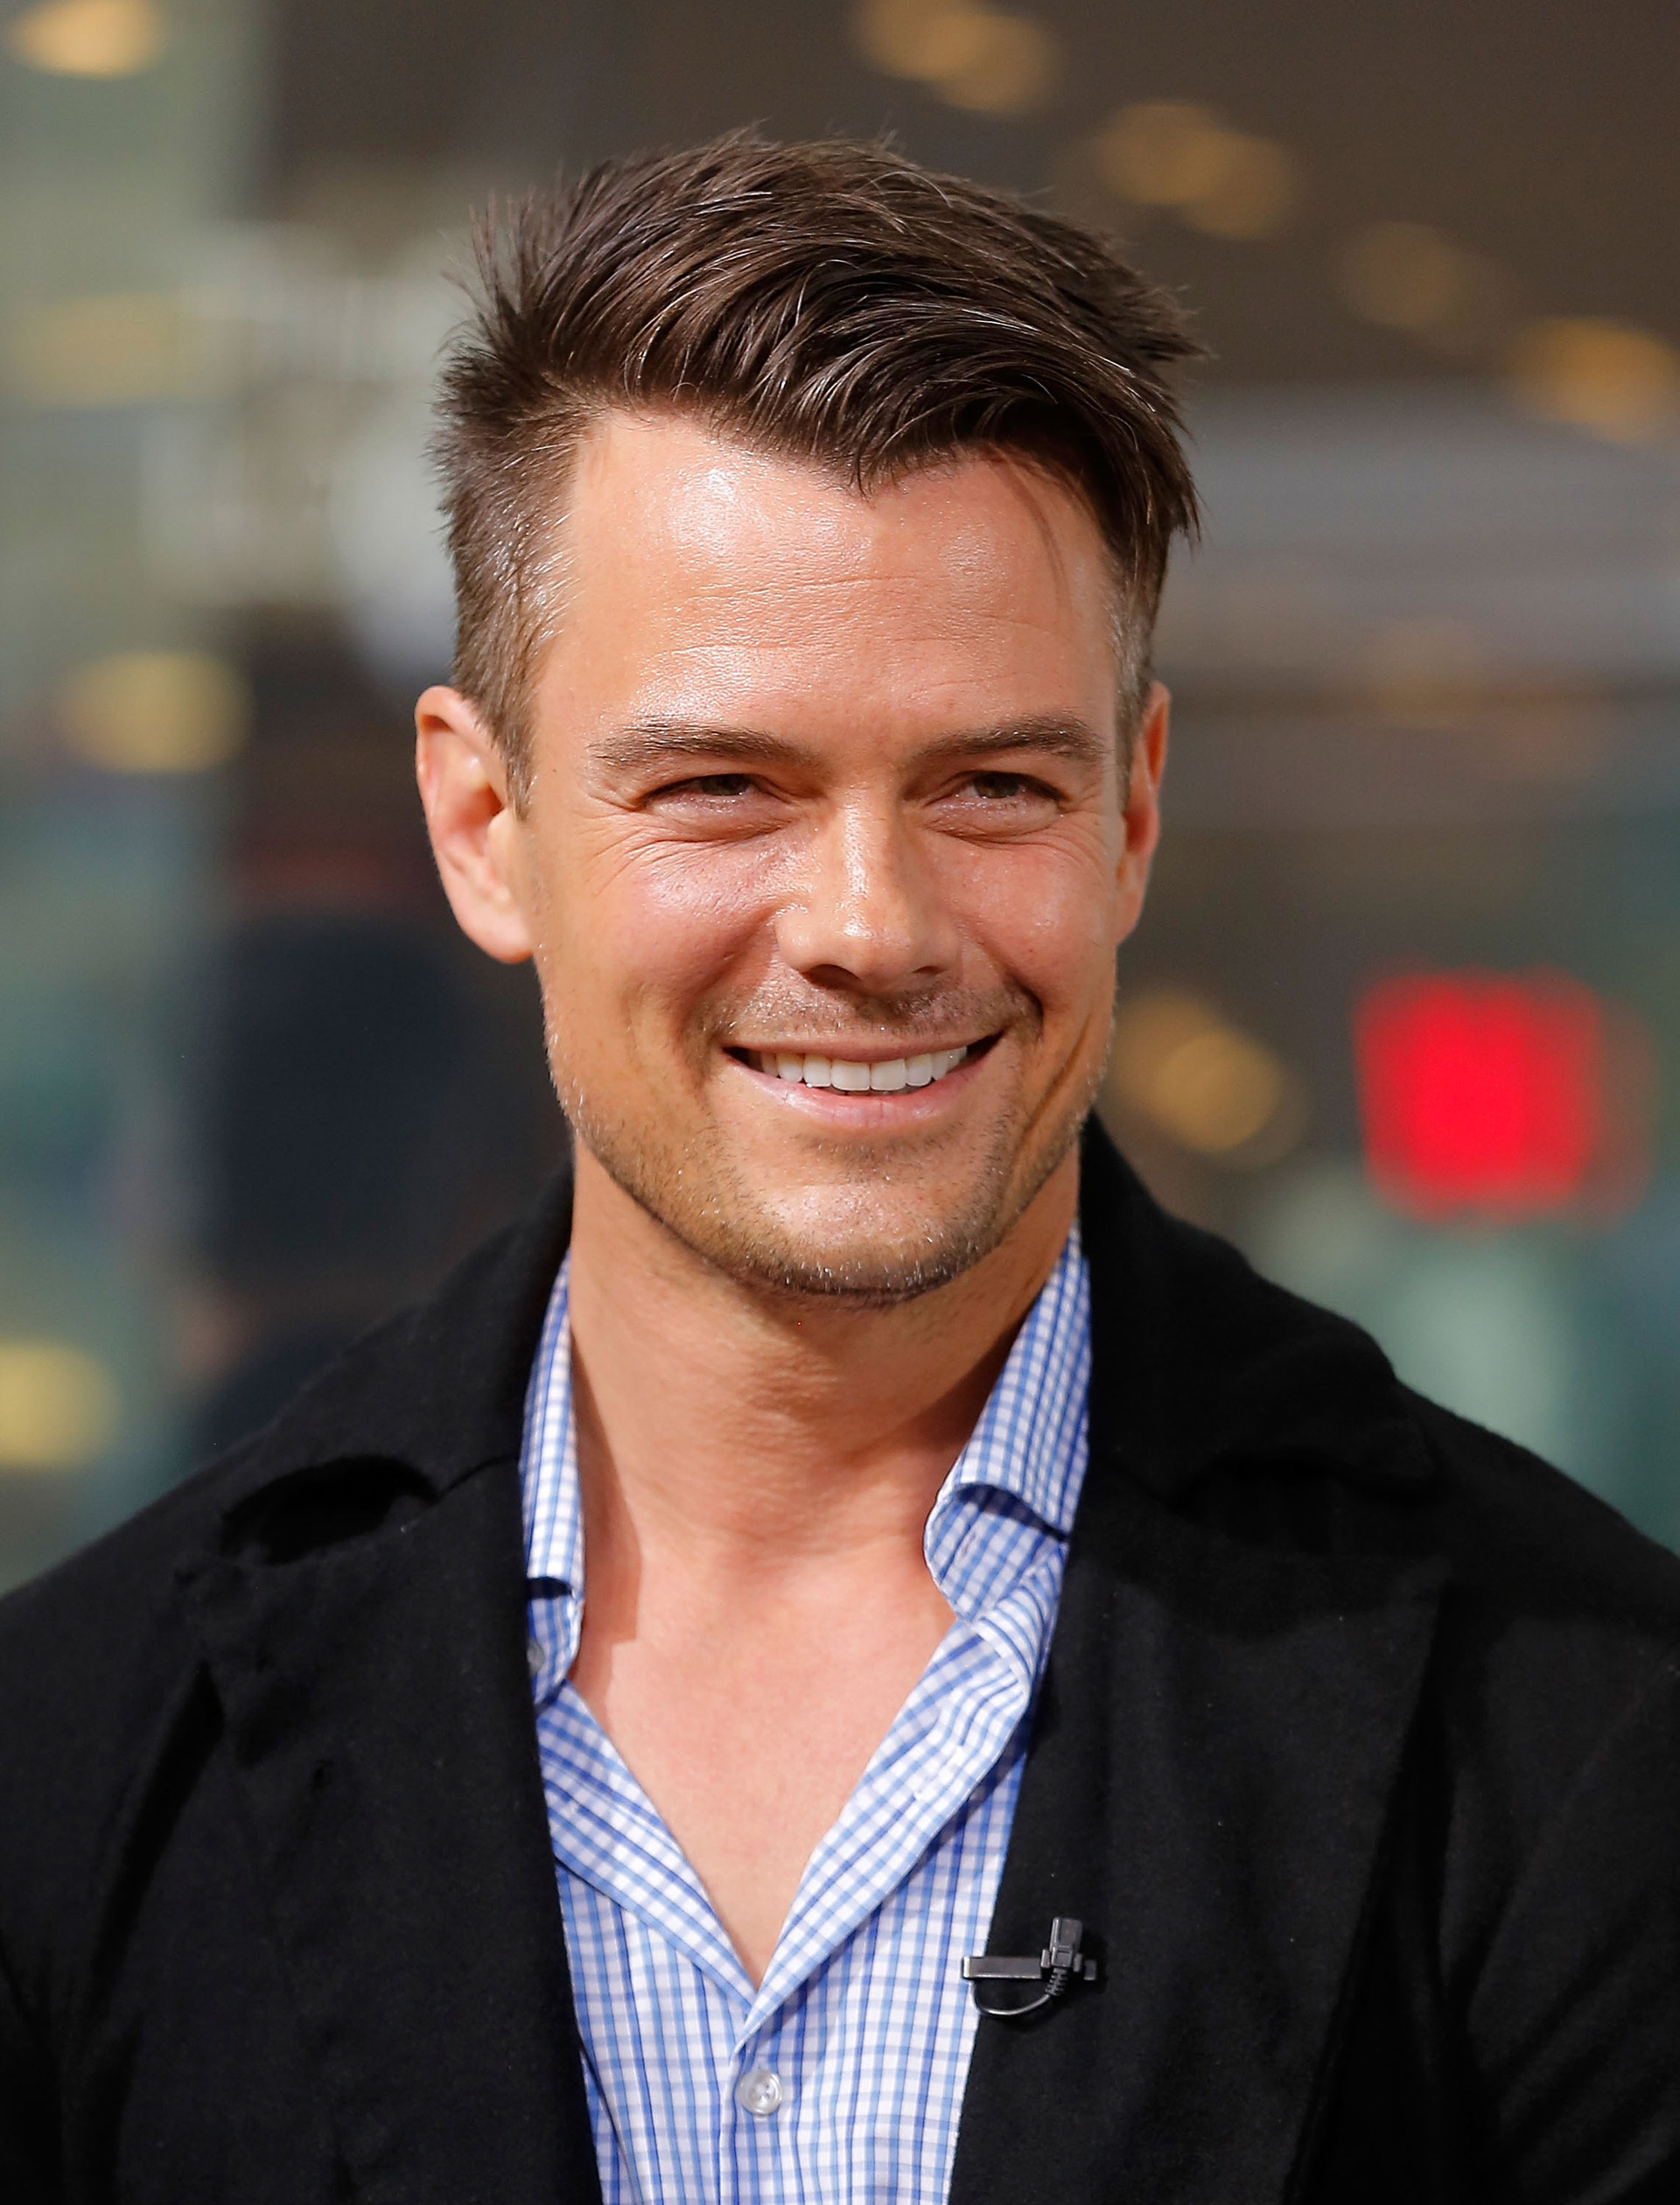 Josh Duhamel Interview - Unilever Project Sunlight Josh Duhamel